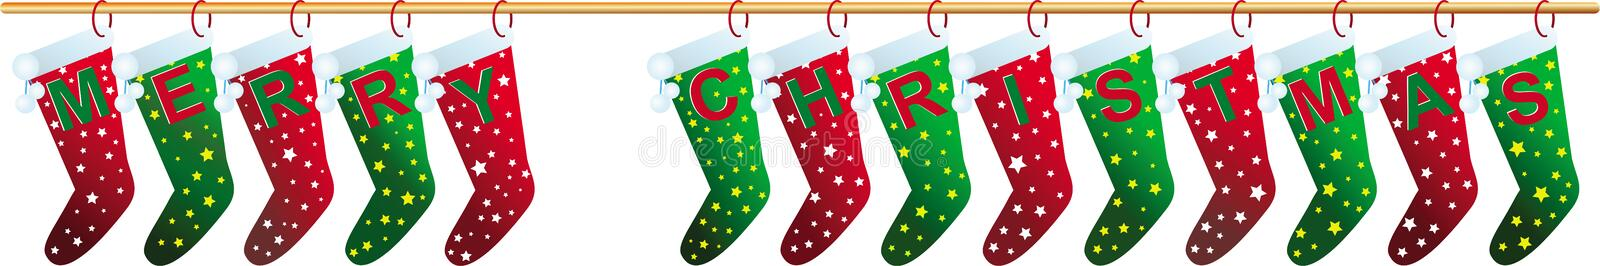 Merry Christmas socks royalty free stock images